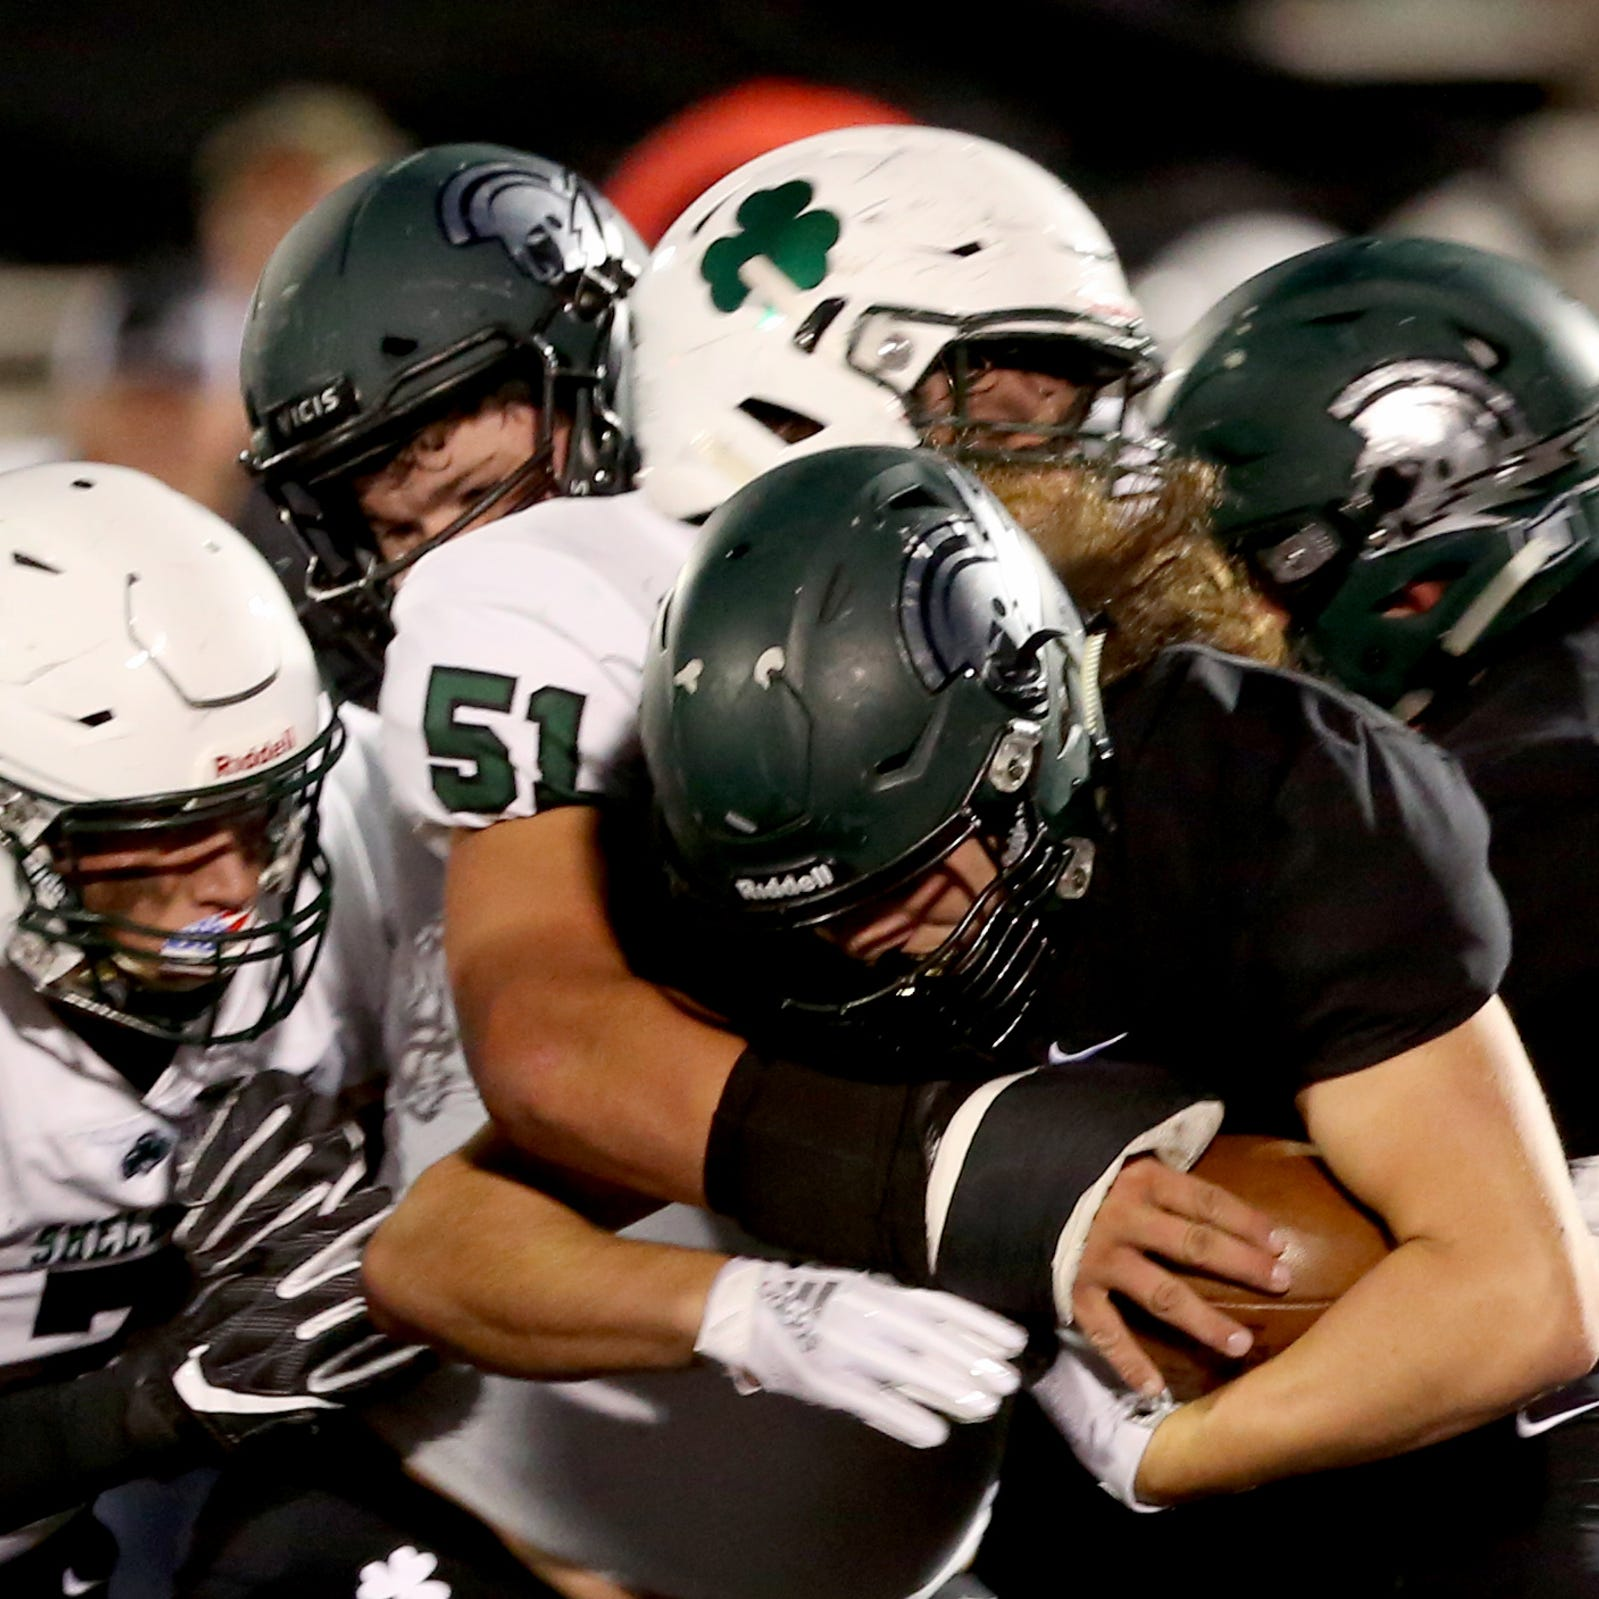 West Salem football loses big to Sheldon